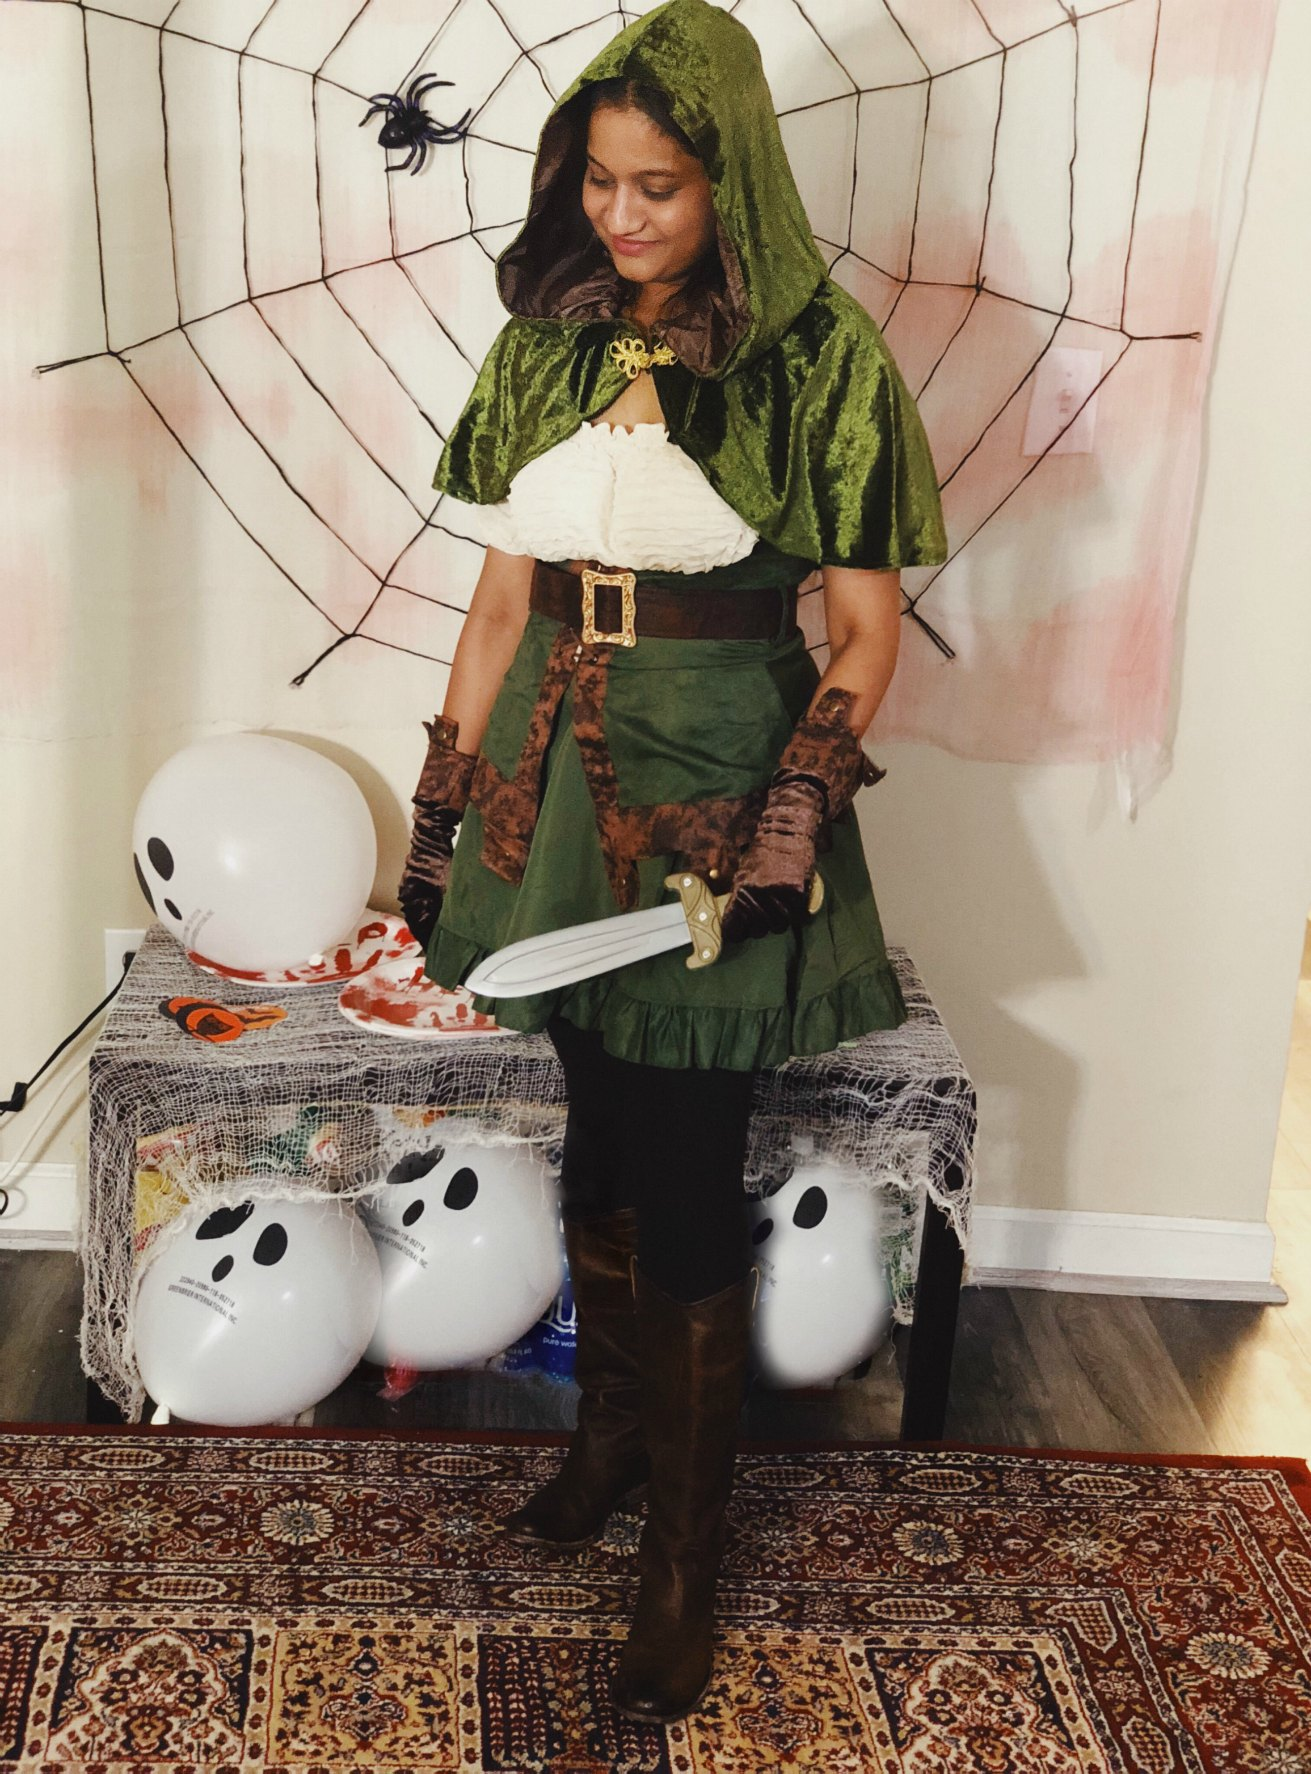 Halloween Bachelorette Robin Hood costume ideas5 Scary Fun Ideas for your Halloween Bachelorette Party- Costumes, Decorations and Games featured by top US life and style blog, Dreaming Loud